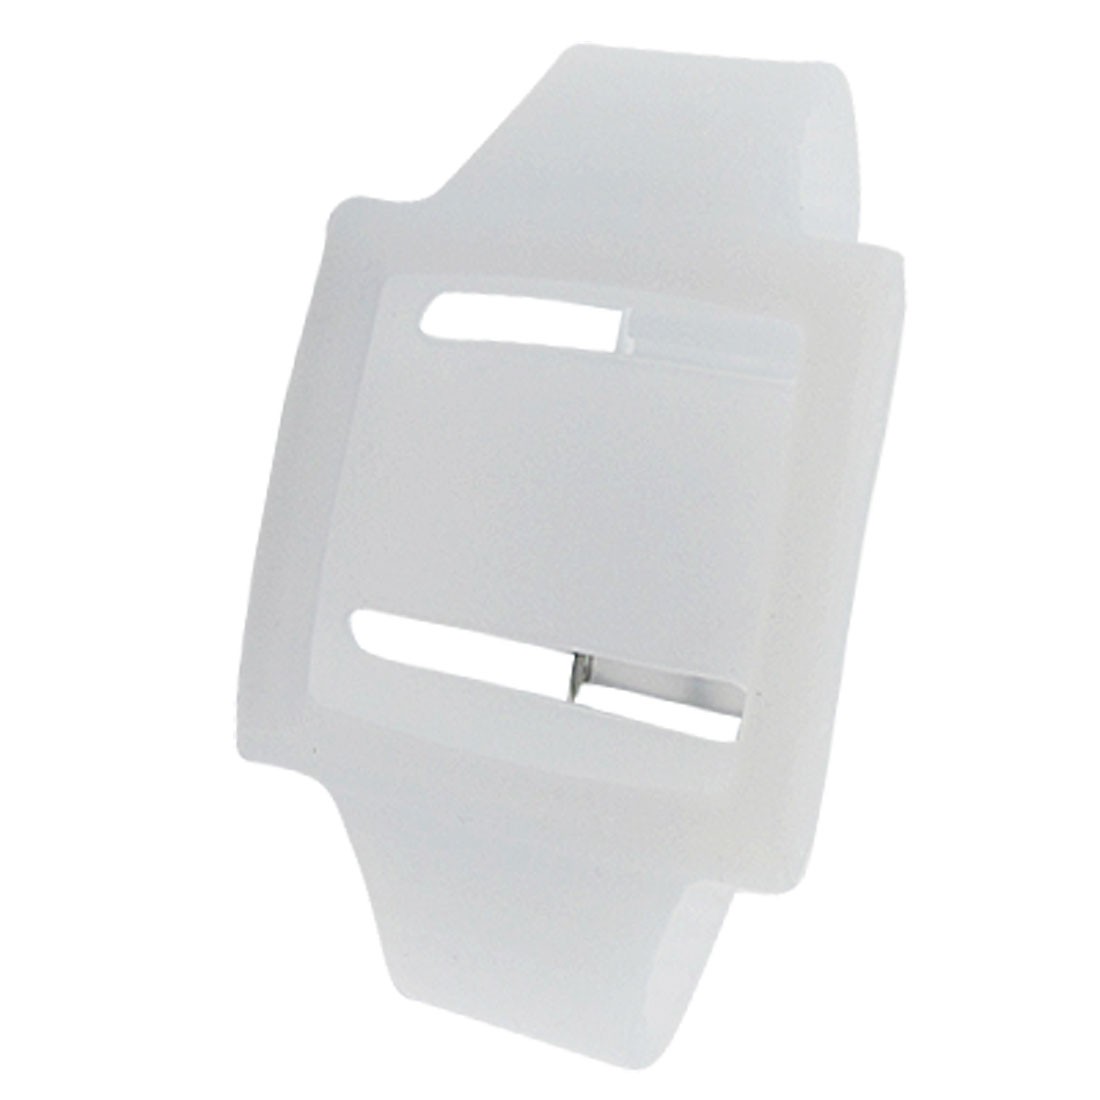 Watch Design Silicone Wrist Strap Case White for iPod Nano 6